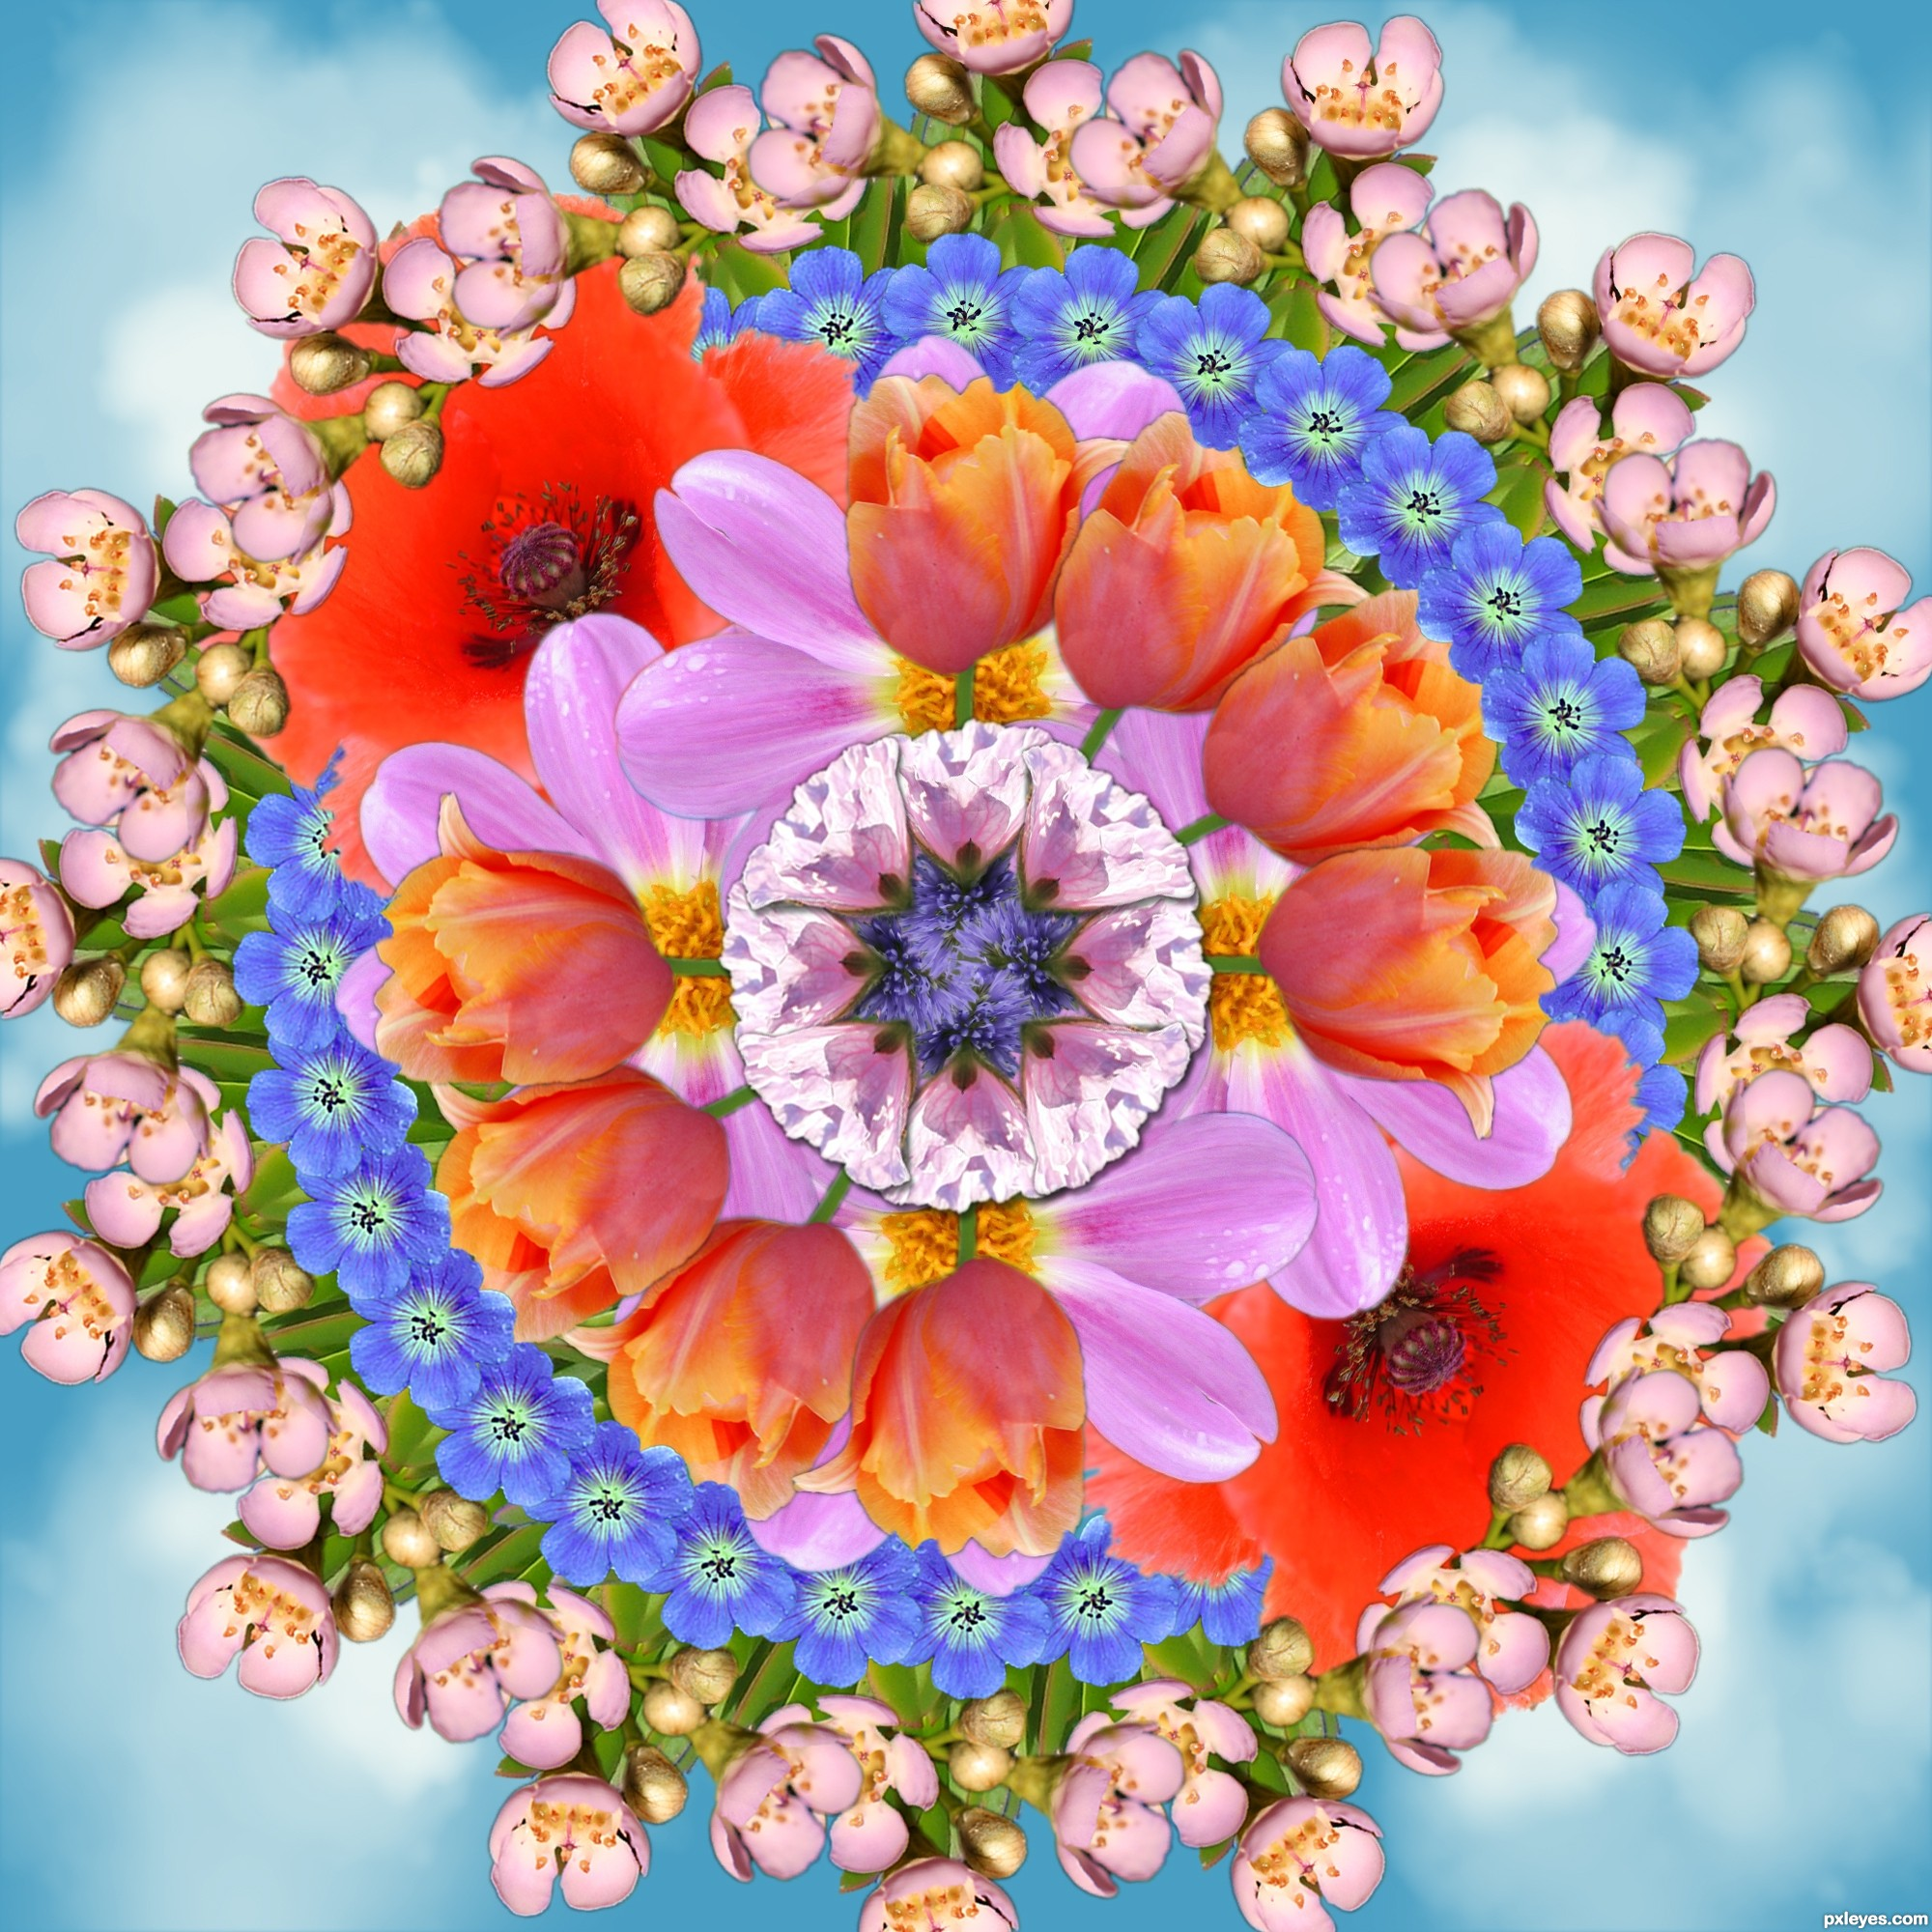 Mandala Bouquet picture, by Nays for: mandala fun photoshop contest ...